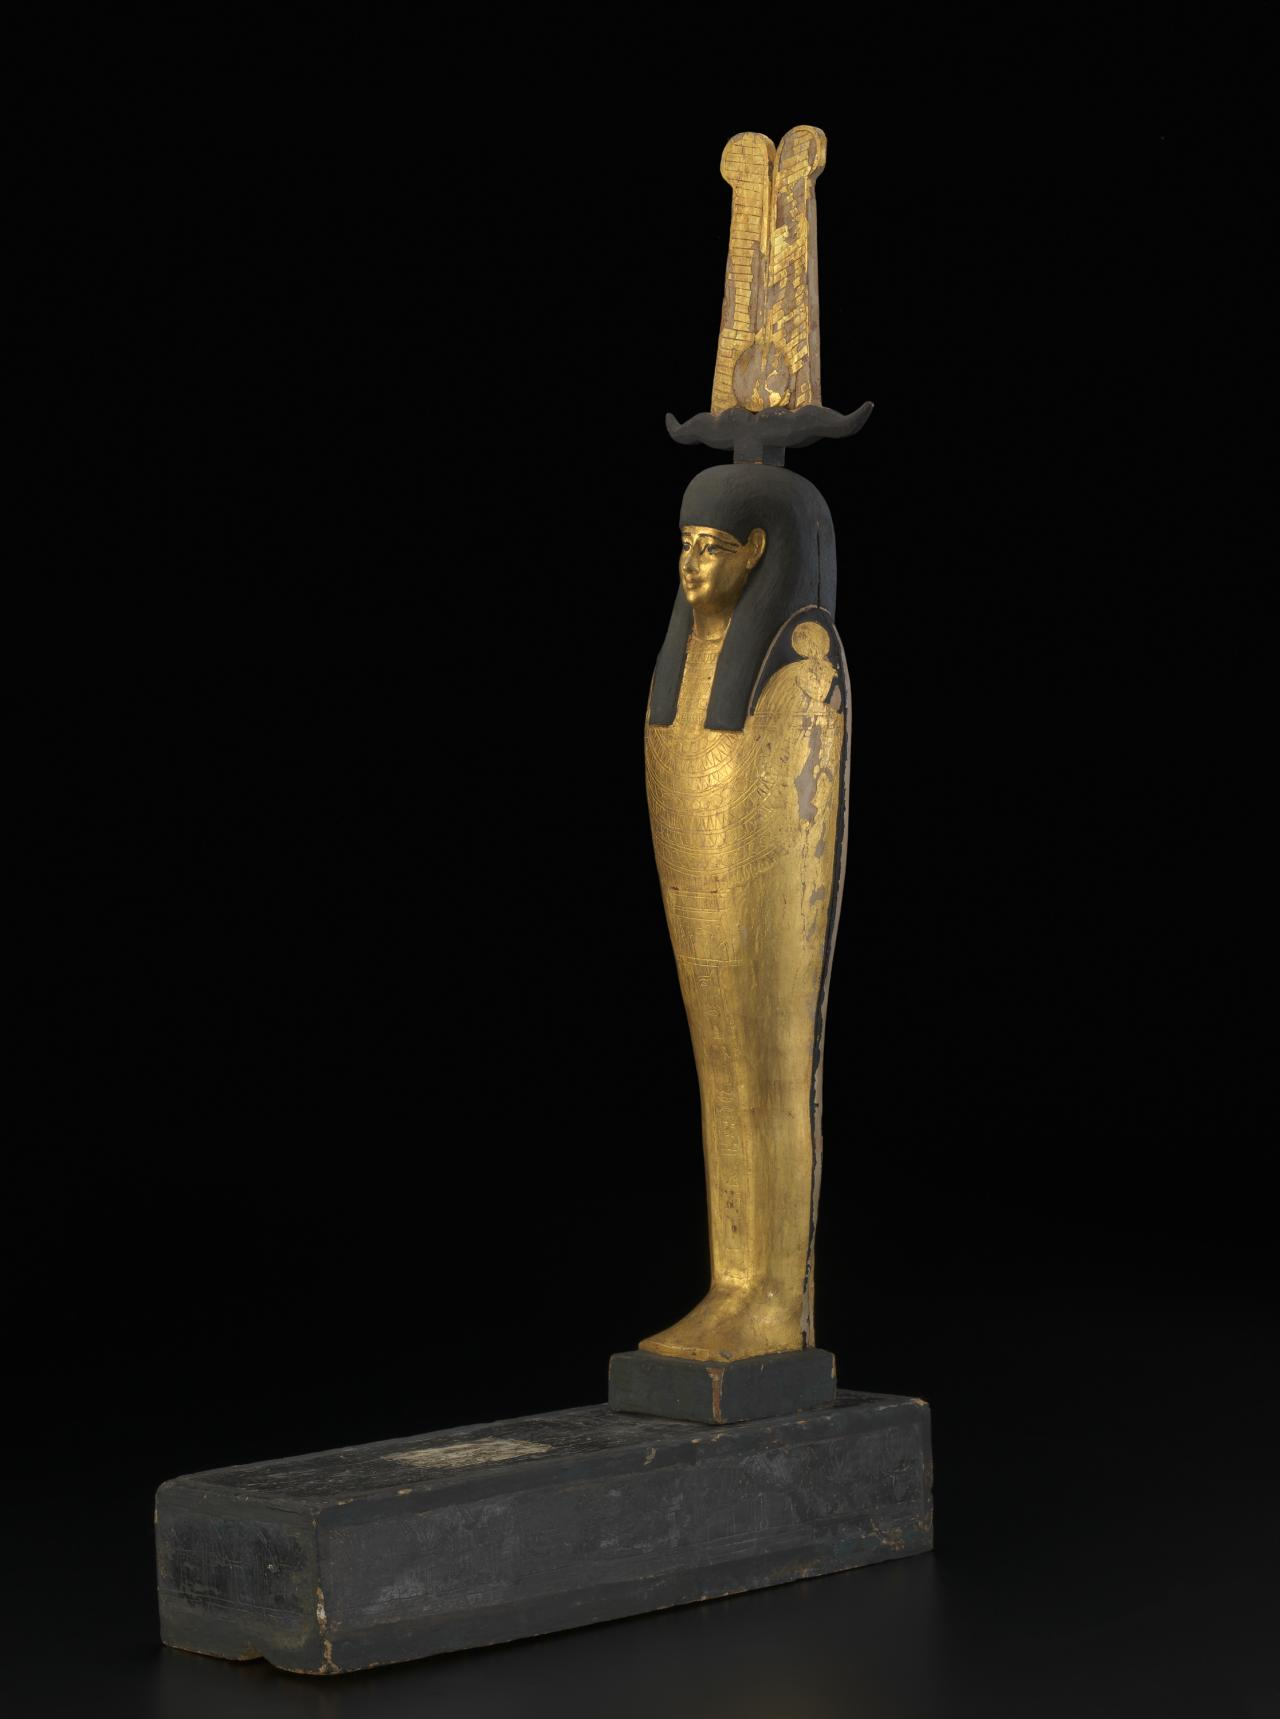 Ptah-Sokar-Osiris figure of Hor, son of Djedhor